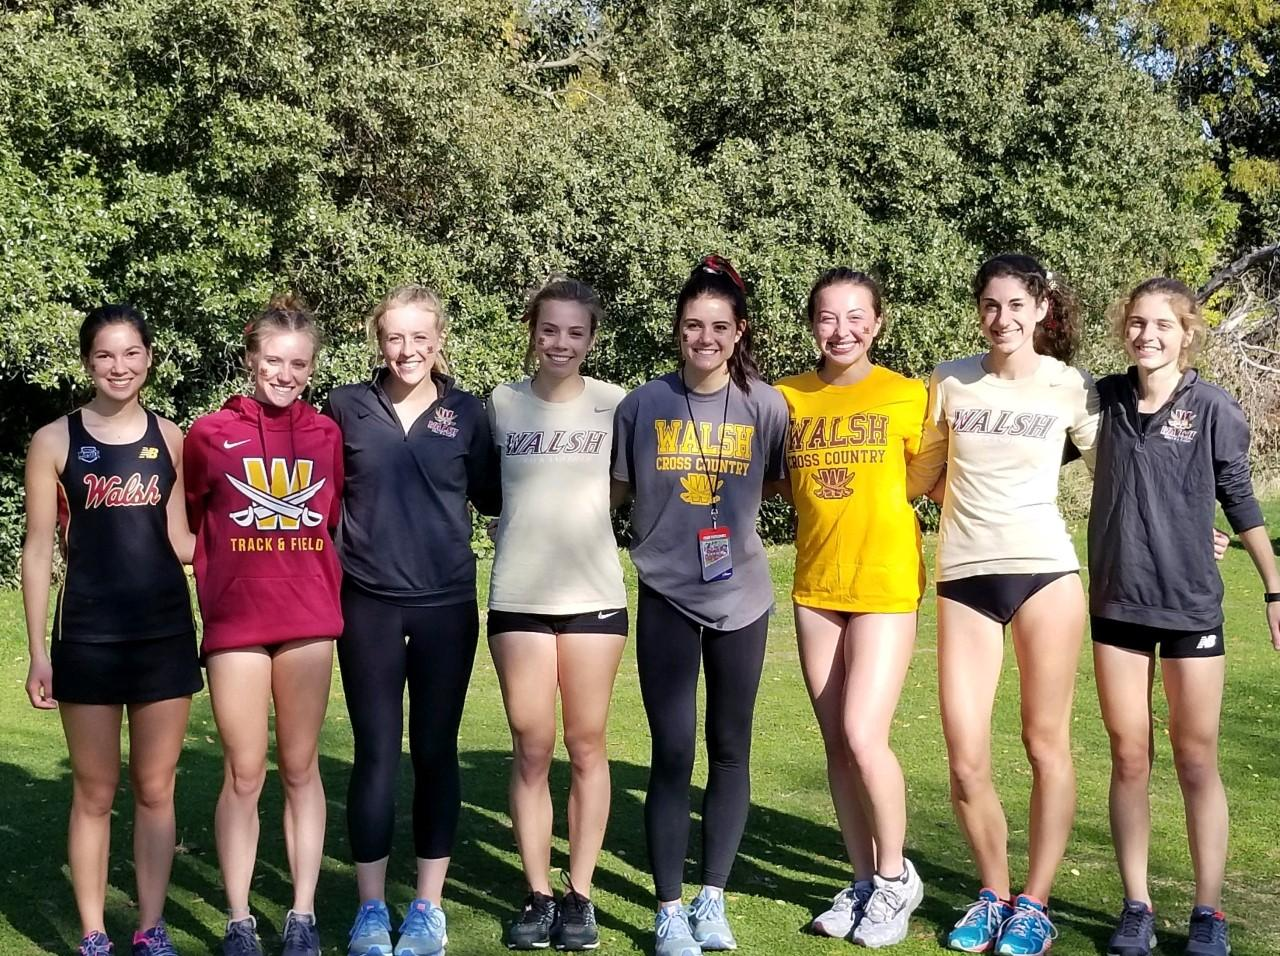 Women's XC Post Best National Championship Team Finish